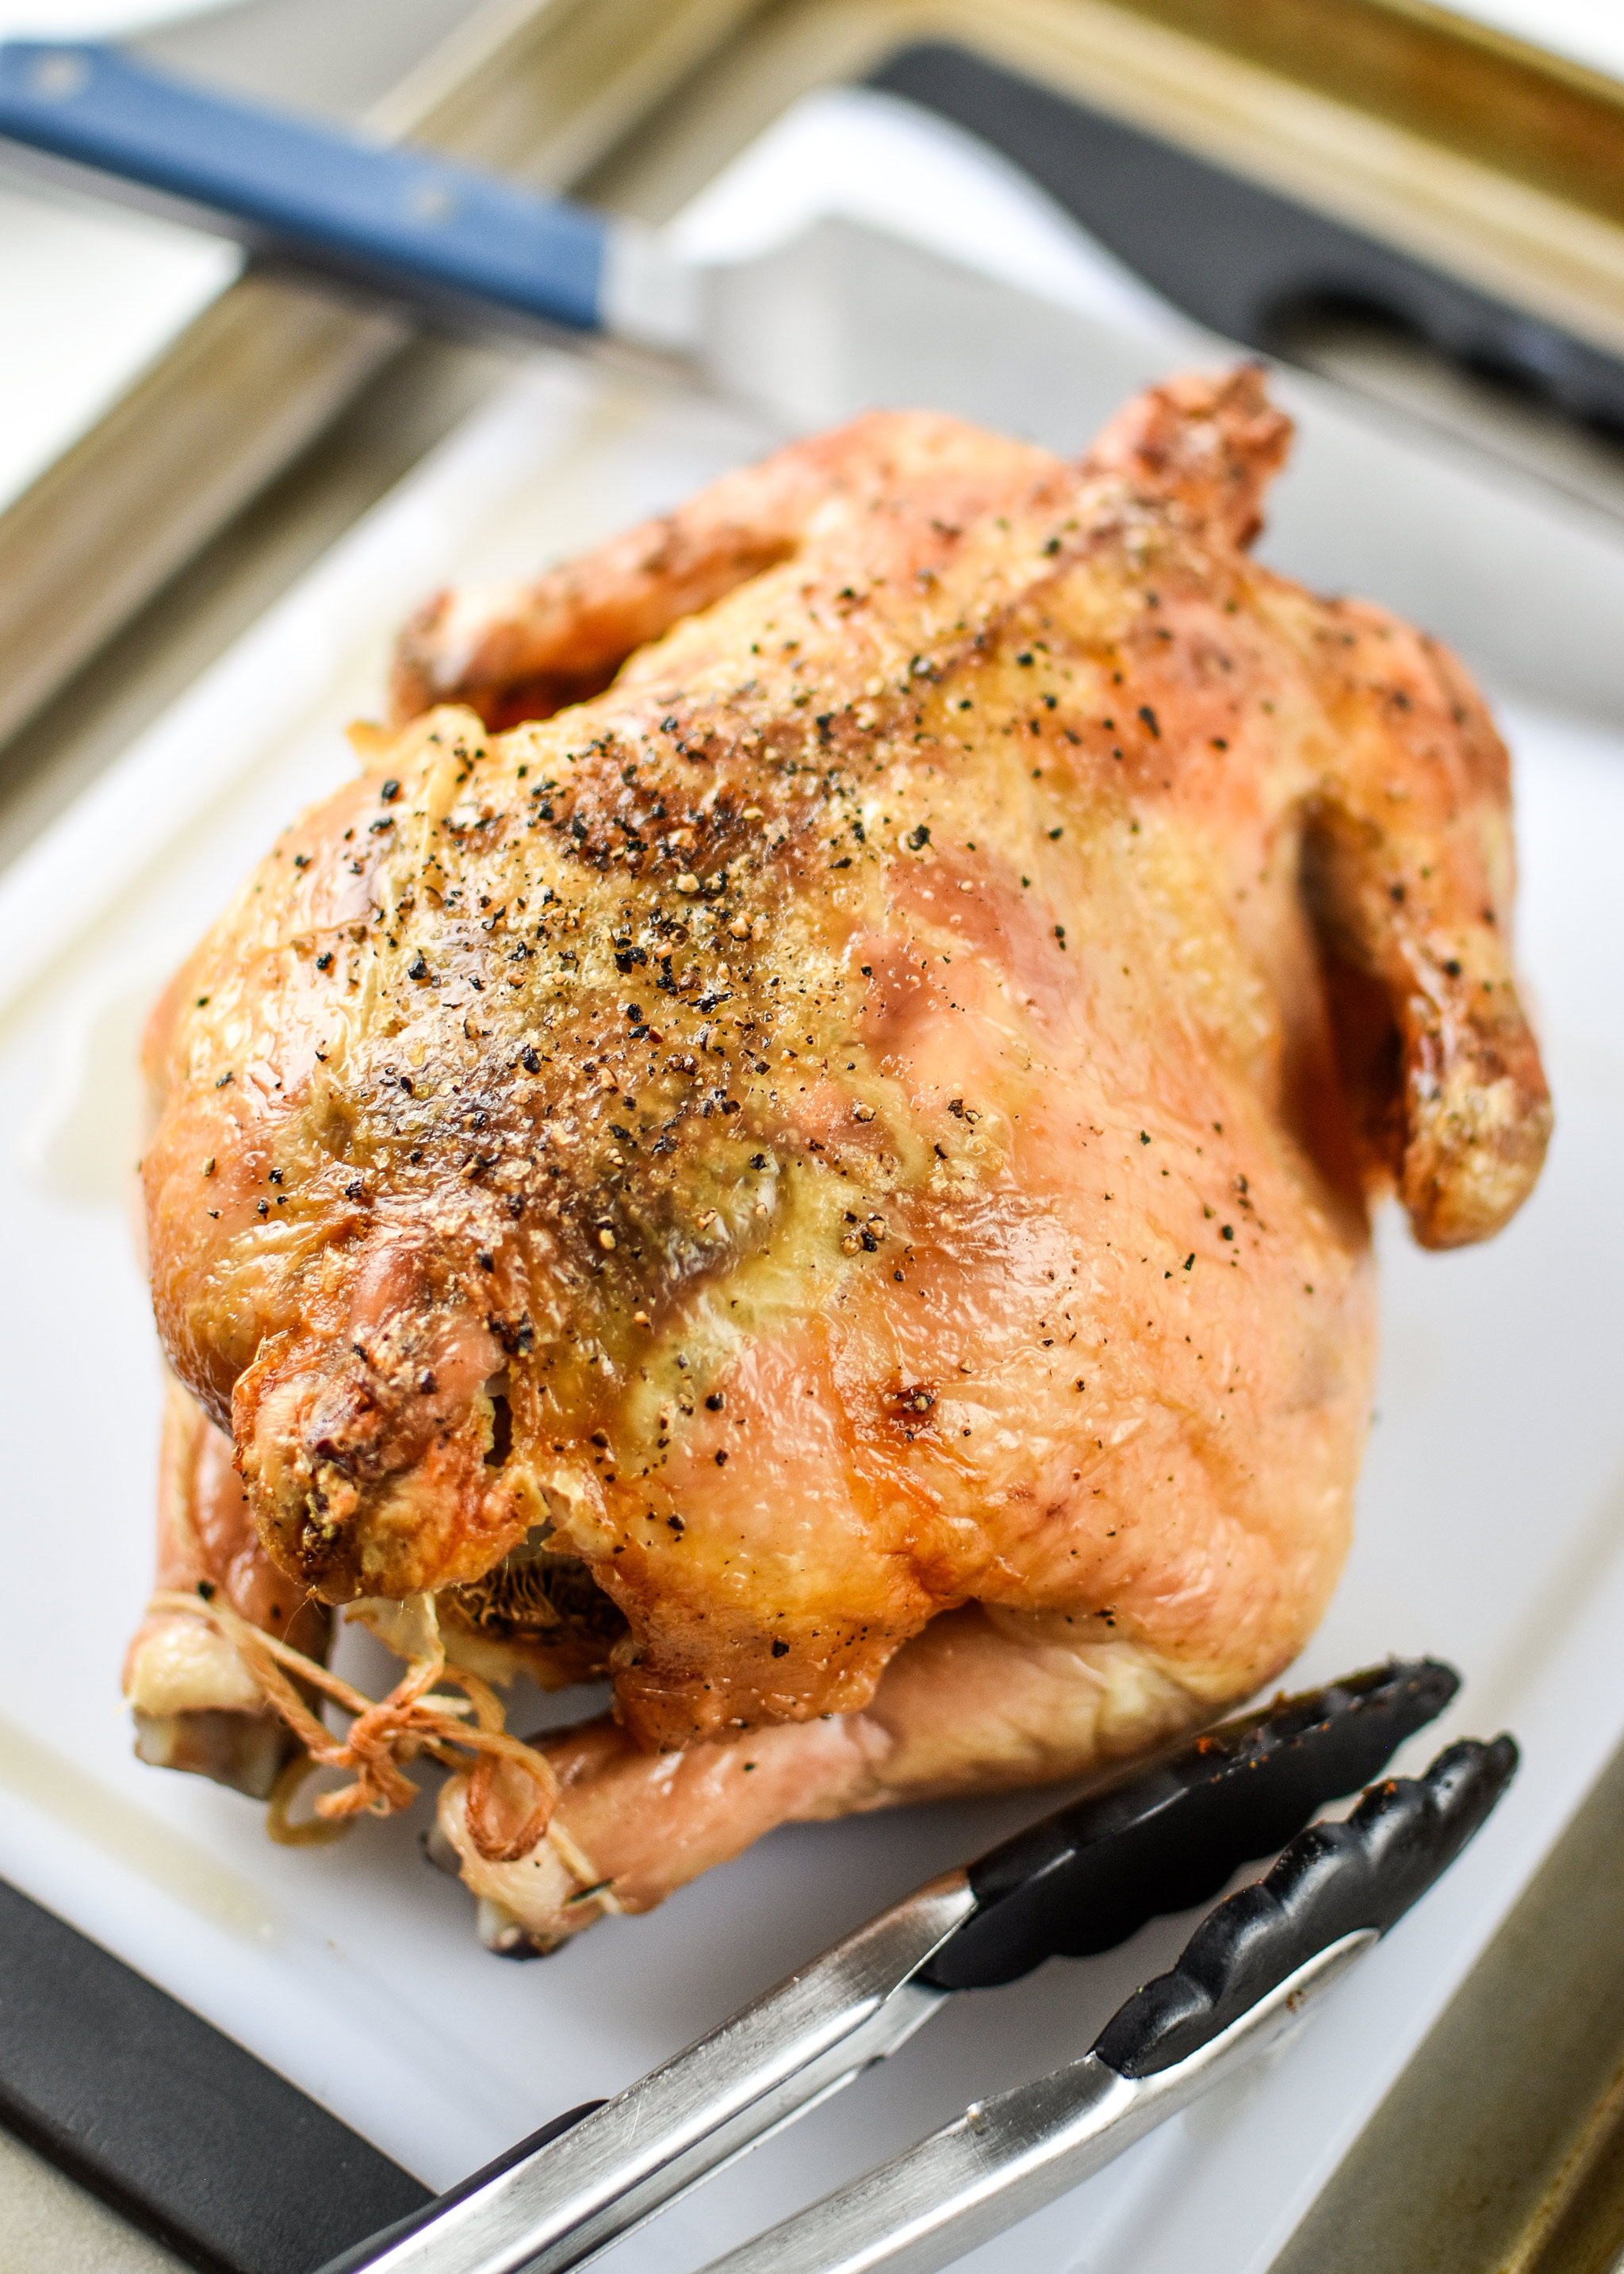 Simple whole roast chicken resting on a cutting board.